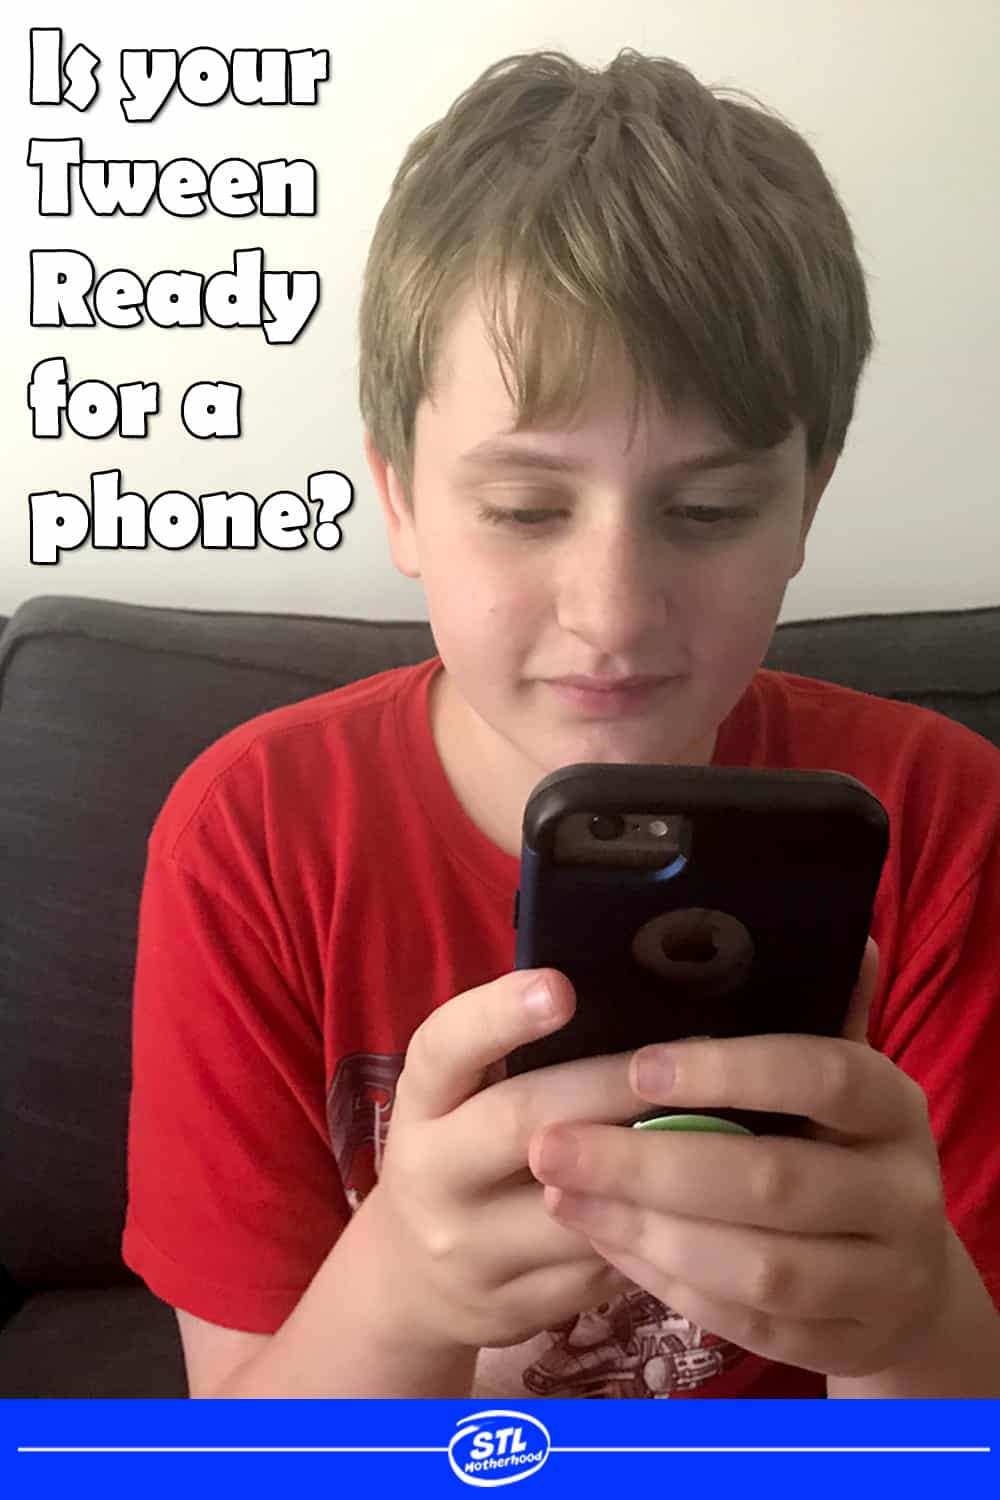 Is your tween kid ready for a smart phone? We're getting my 12 year old his first iphone! Yes, we waited until he really needed to be mobile. Plus tips for St. Louis moms on where to find the best deal on first phone. #iphone #firstphone